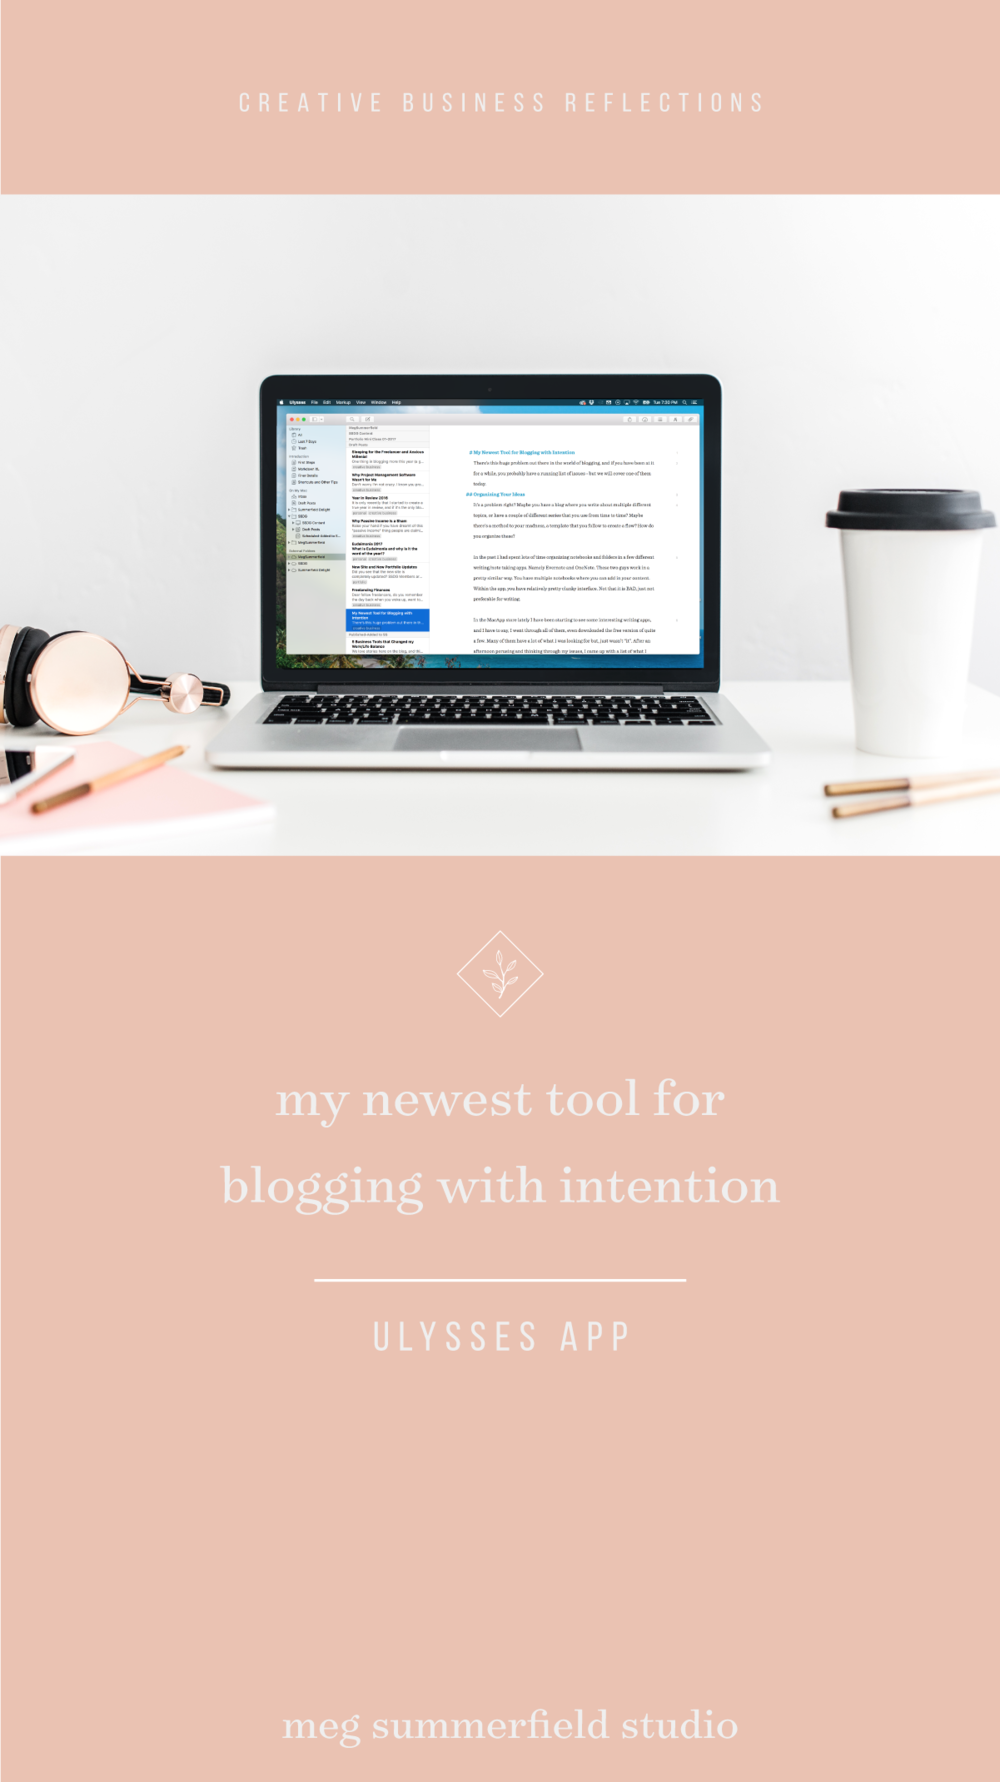 Meg Summerfield Studio | My Newest Tool for Blogging and Writing with Intention | Ulysses App